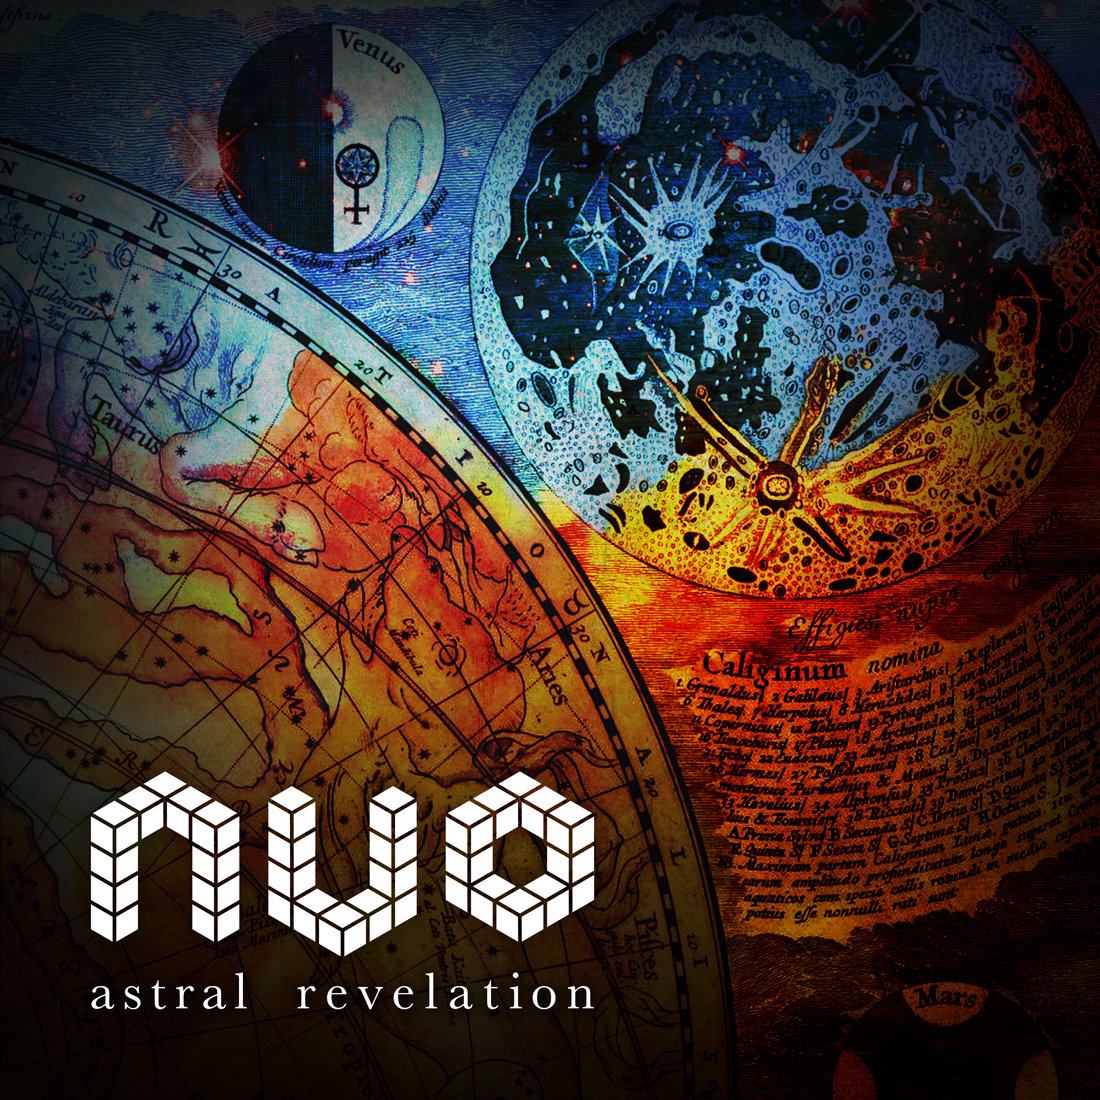 NVO - Astral Revelation (My Pet Monster Remix) @ 'Astral Revelation' album (deep house, electro house)